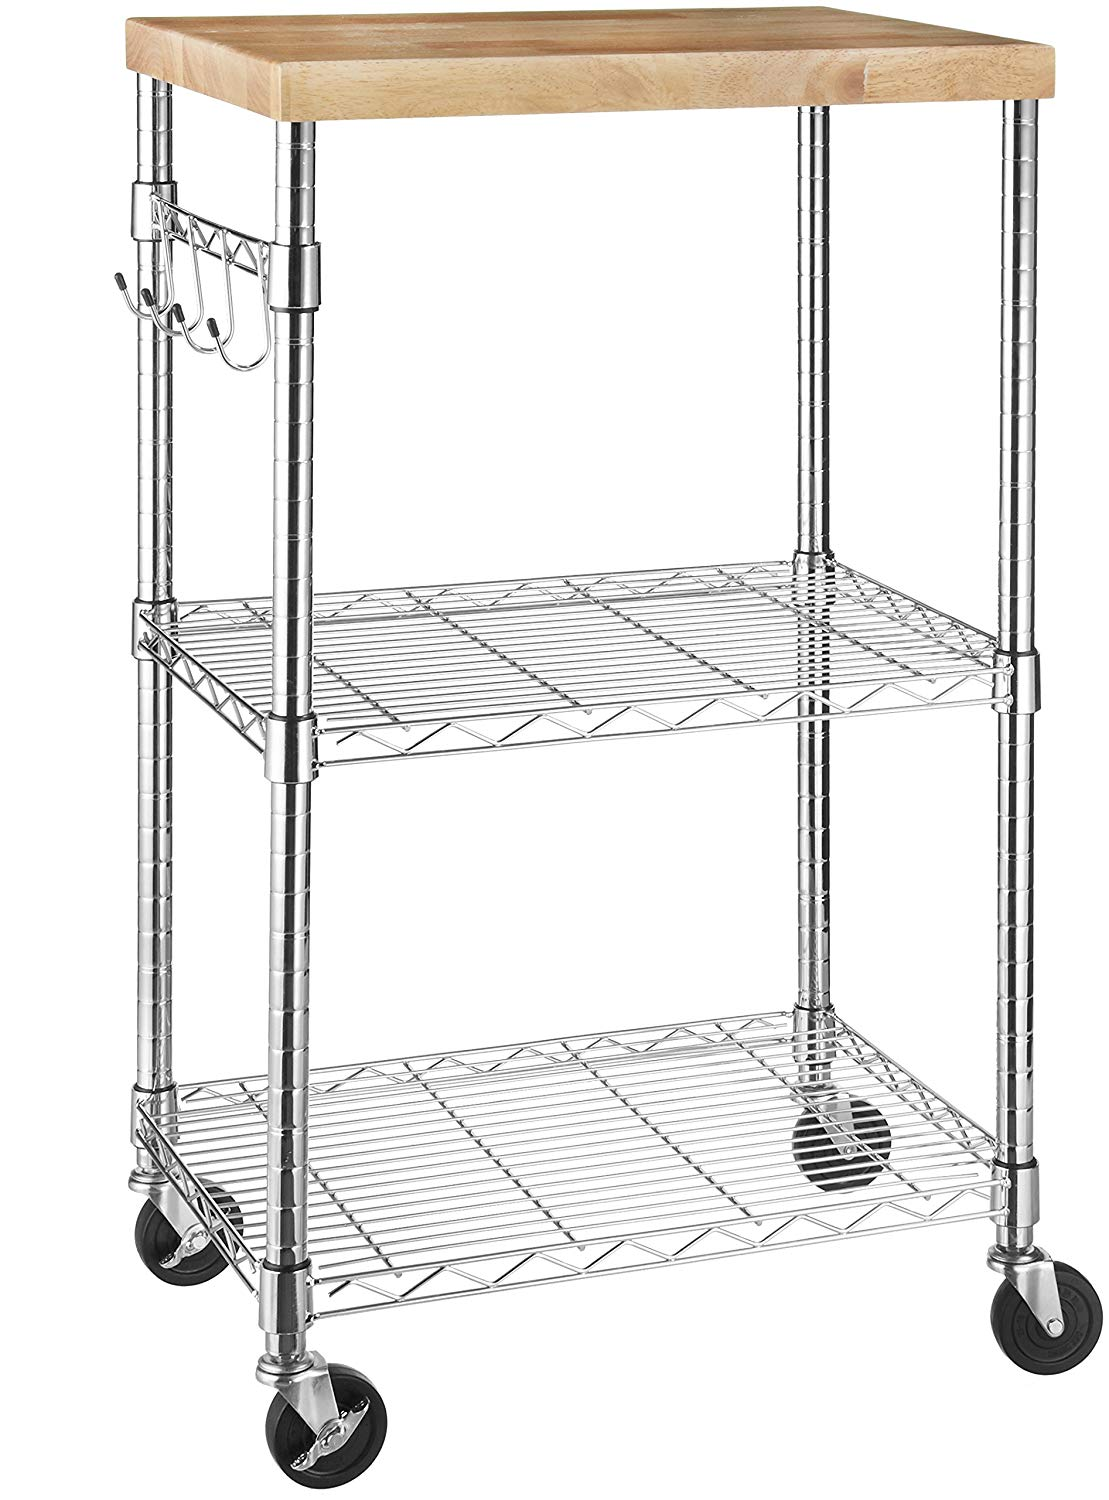 21fbda6ffac8 Kitchen Rolling Cart